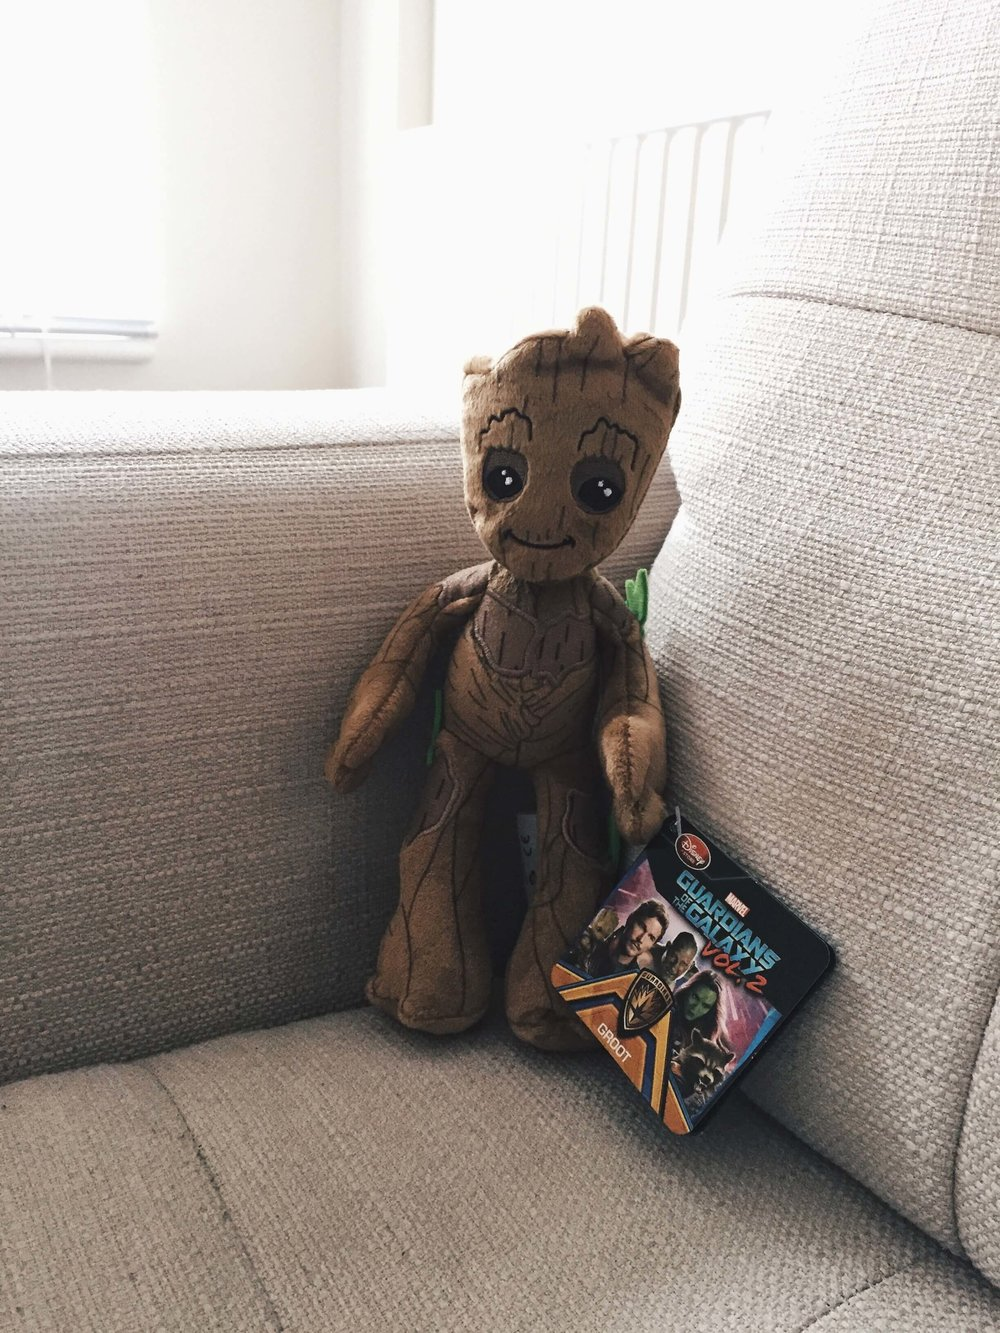 Has anyone seen Guardians of the Galaxy? Groot is the cutest, so I had to get him!